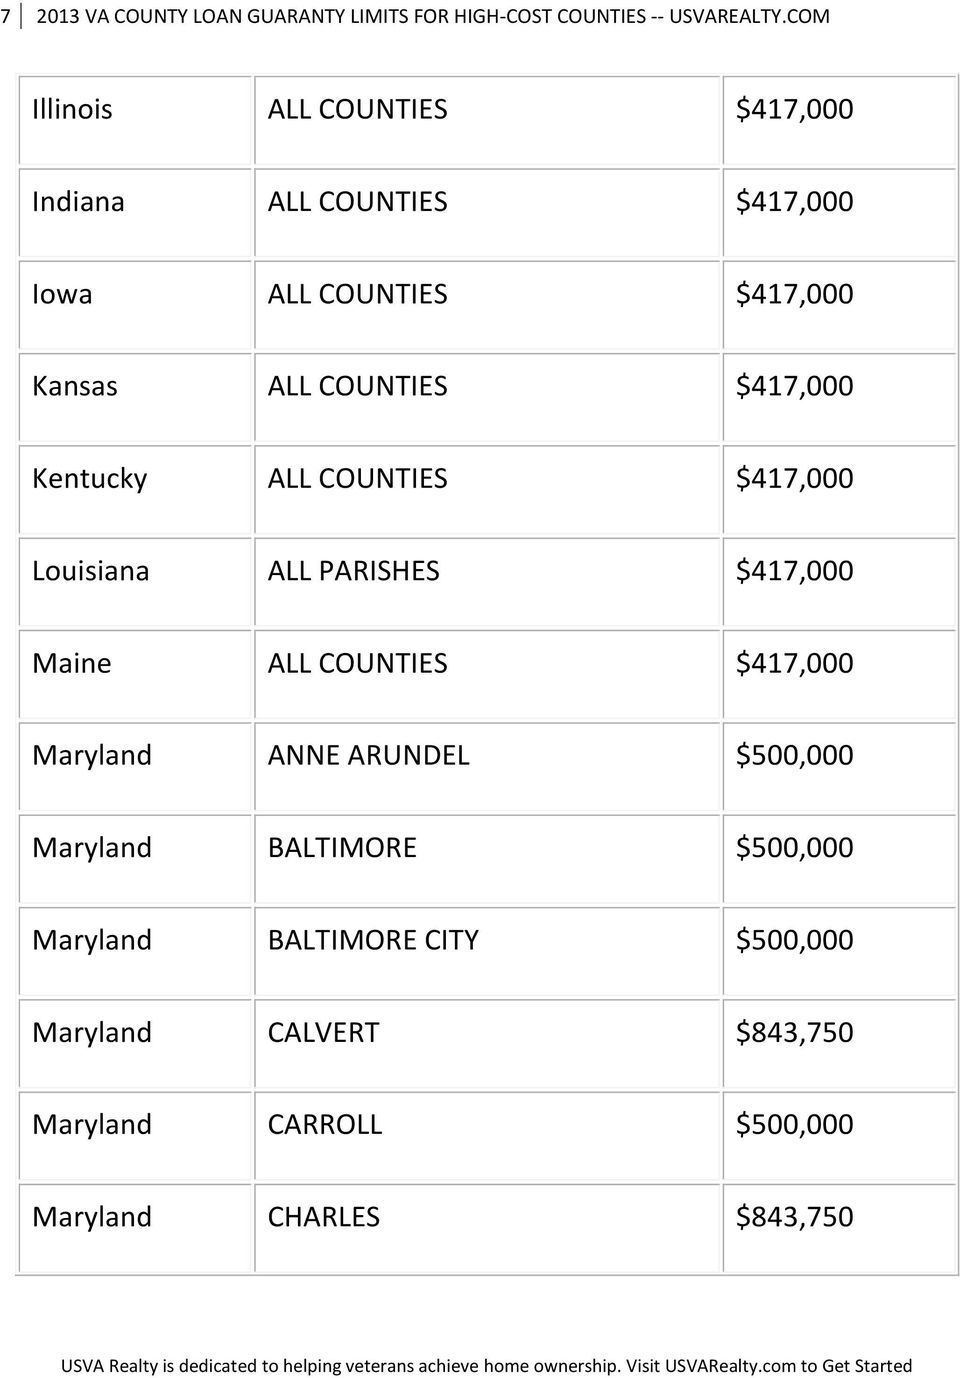 $417,000 Kentucky ALL COUNTIES $417,000 Louisiana ALL PARISHES $417,000 Maine ALL COUNTIES $417,000 Maryland ANNE